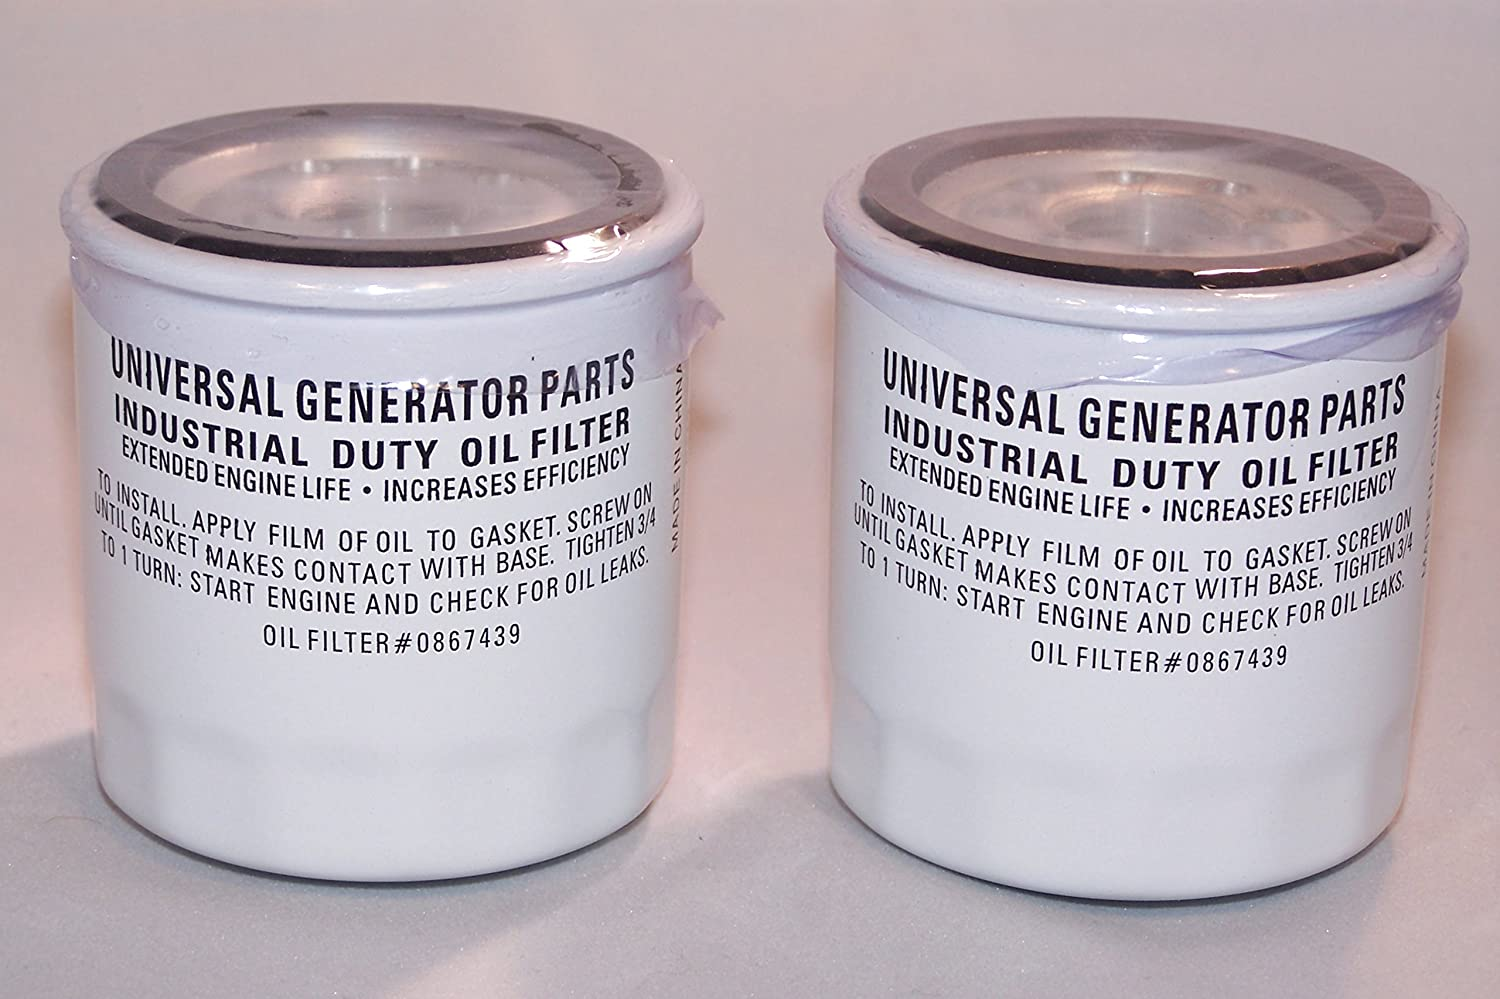 Universal Generator Part Replacement Oil 5 ☆ popular for Filters and 070185B Cheap super special price